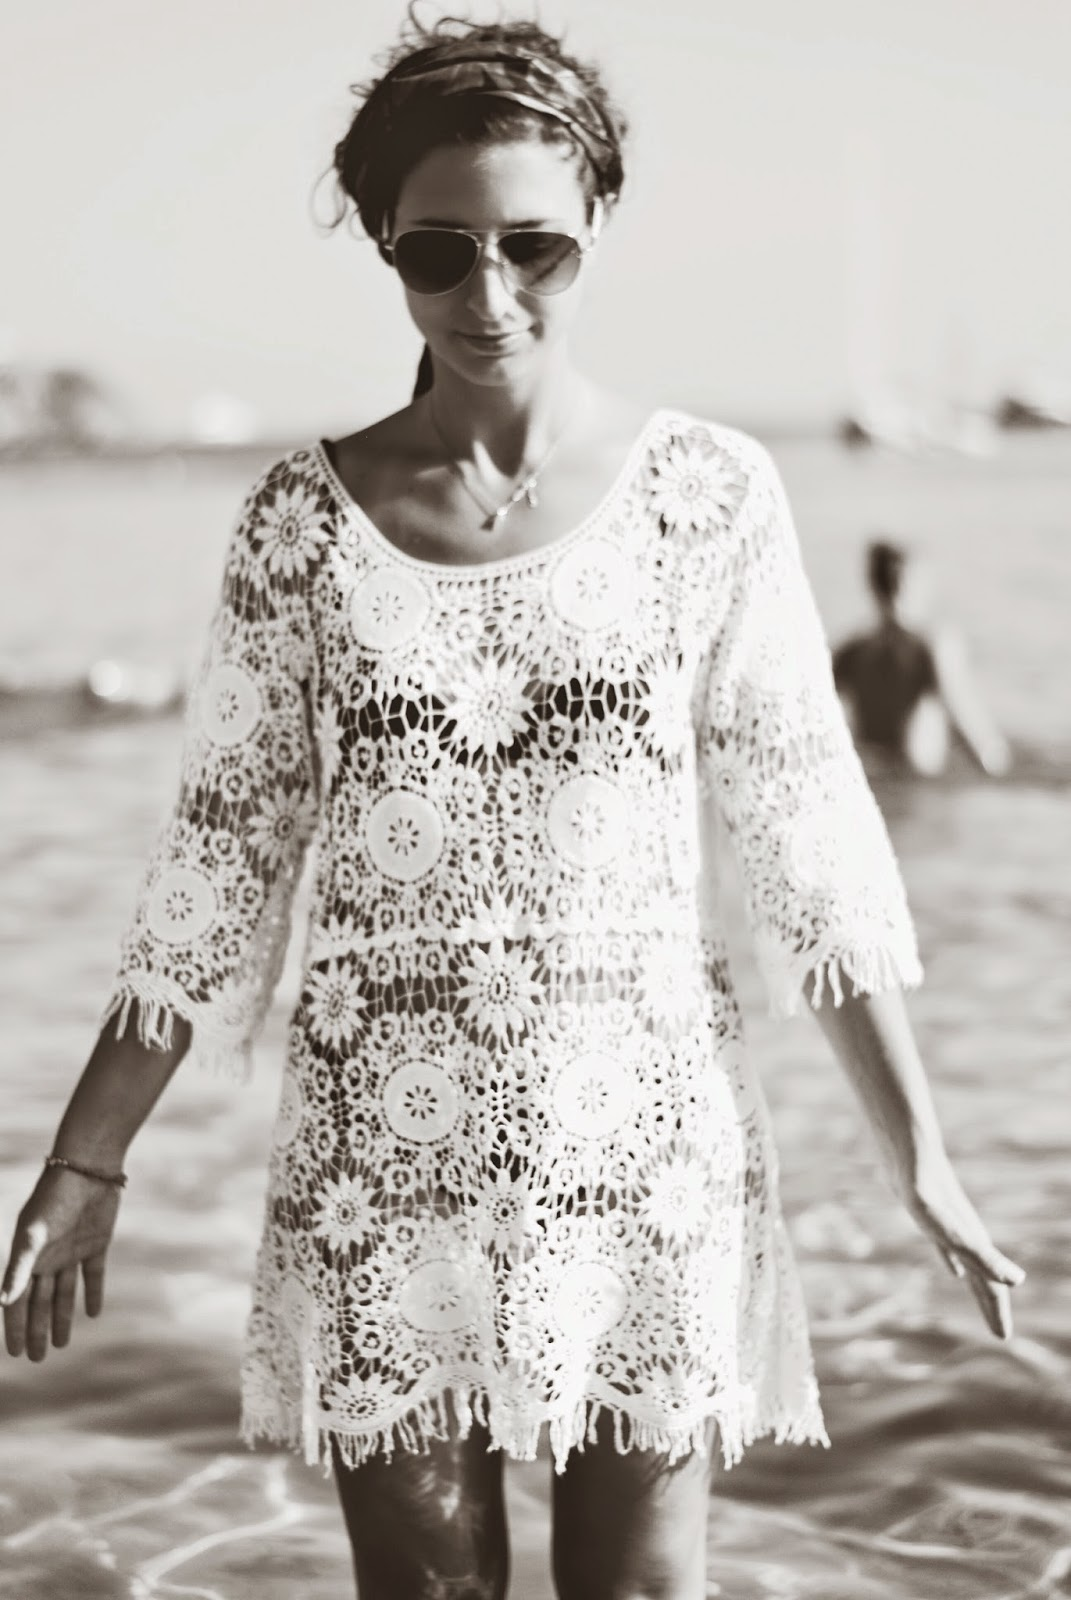 mykonos greece beach summer fashion crochet dress white